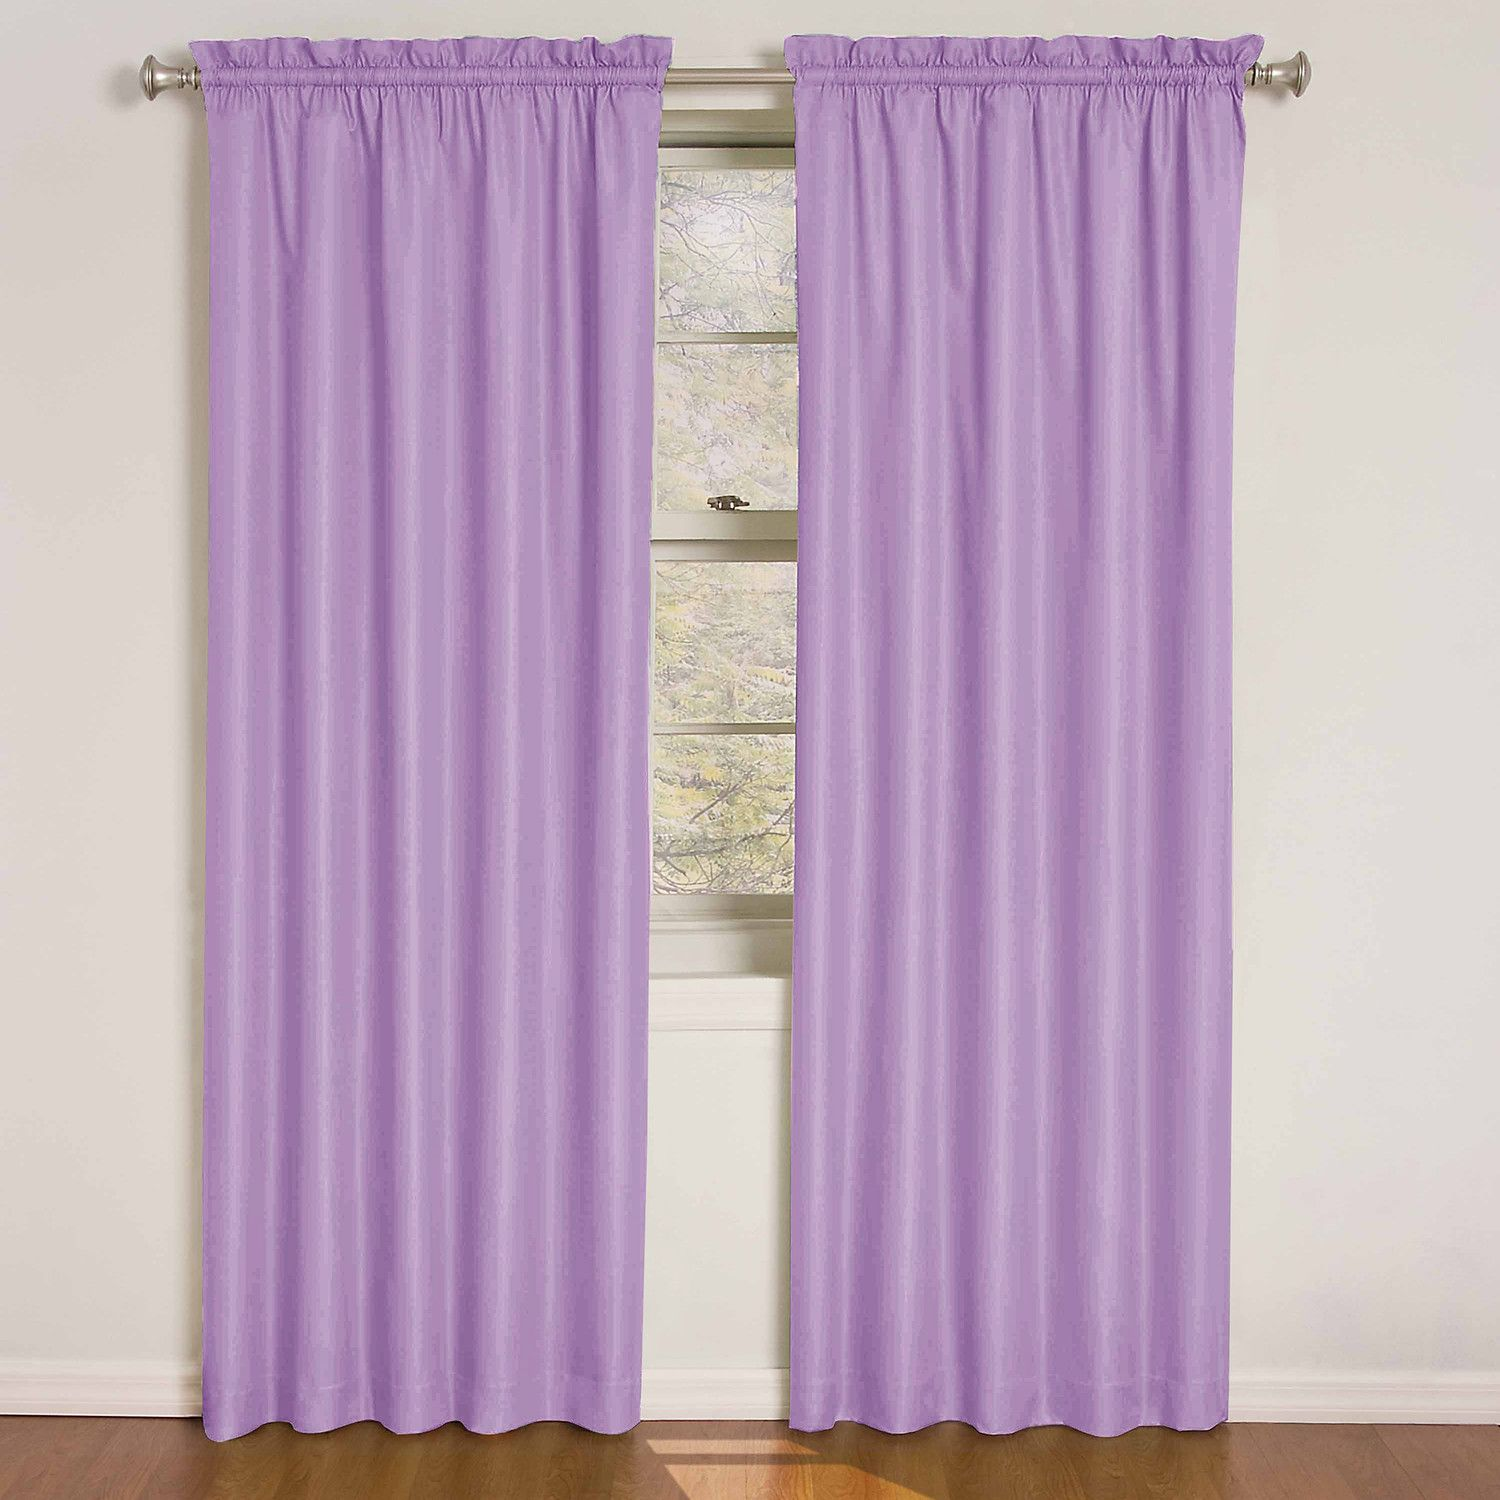 Insola Blackout Curtains Reviews Oh Decor Curtain